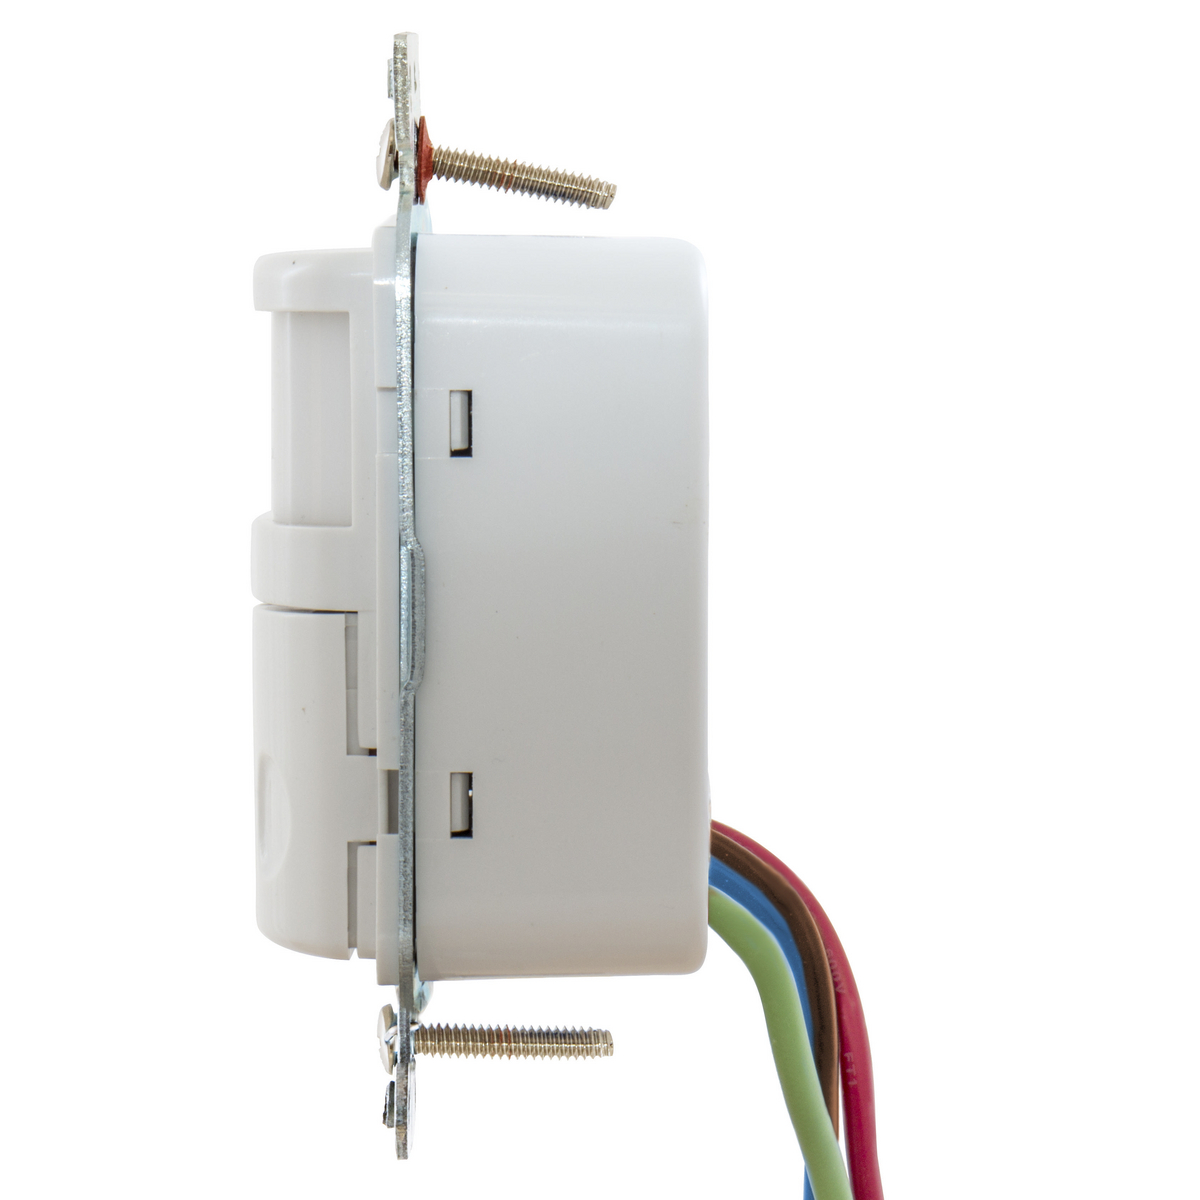 WS1021W   Wall Switch Sensors   Lighting Controls   Wiring Devices ...